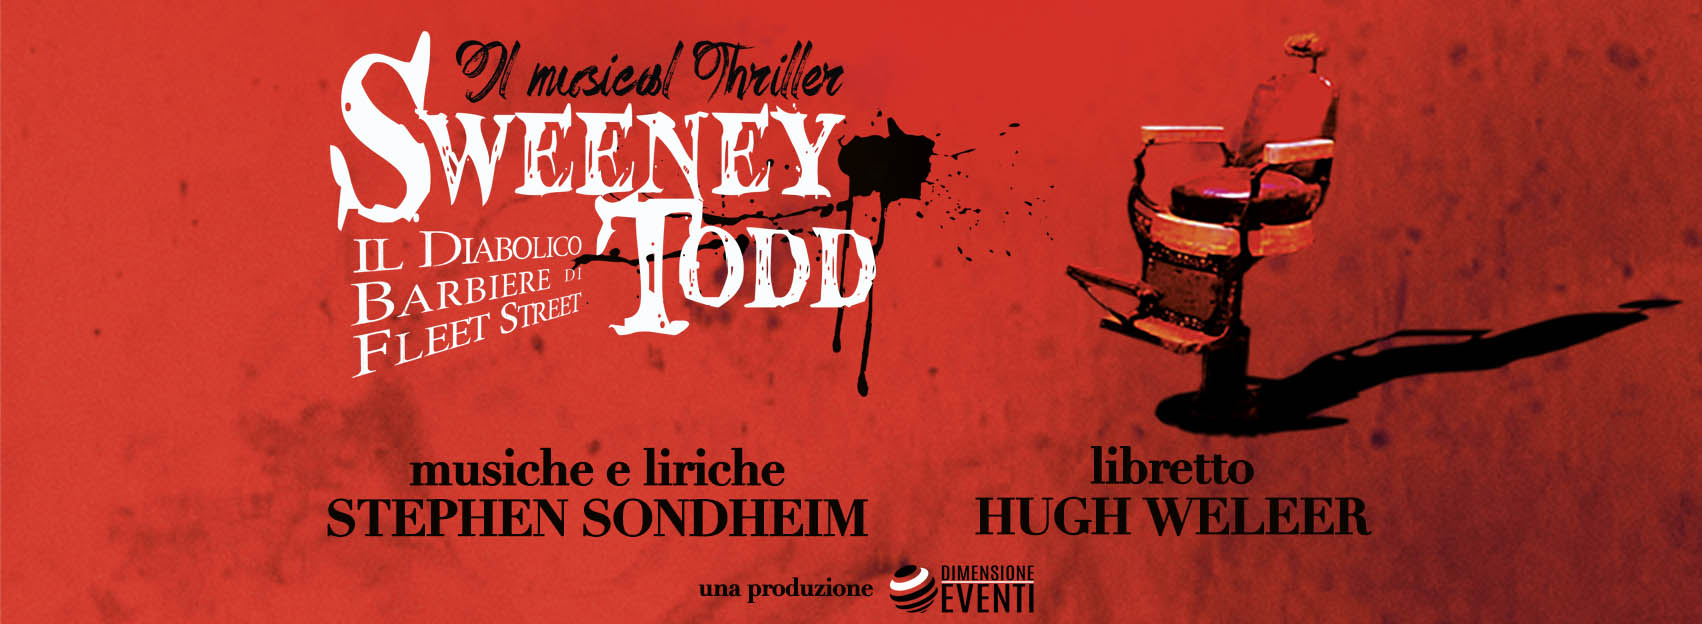 Photo of Halloween a teatro con il Musical Sweeney Todd: prima tappa a Torino